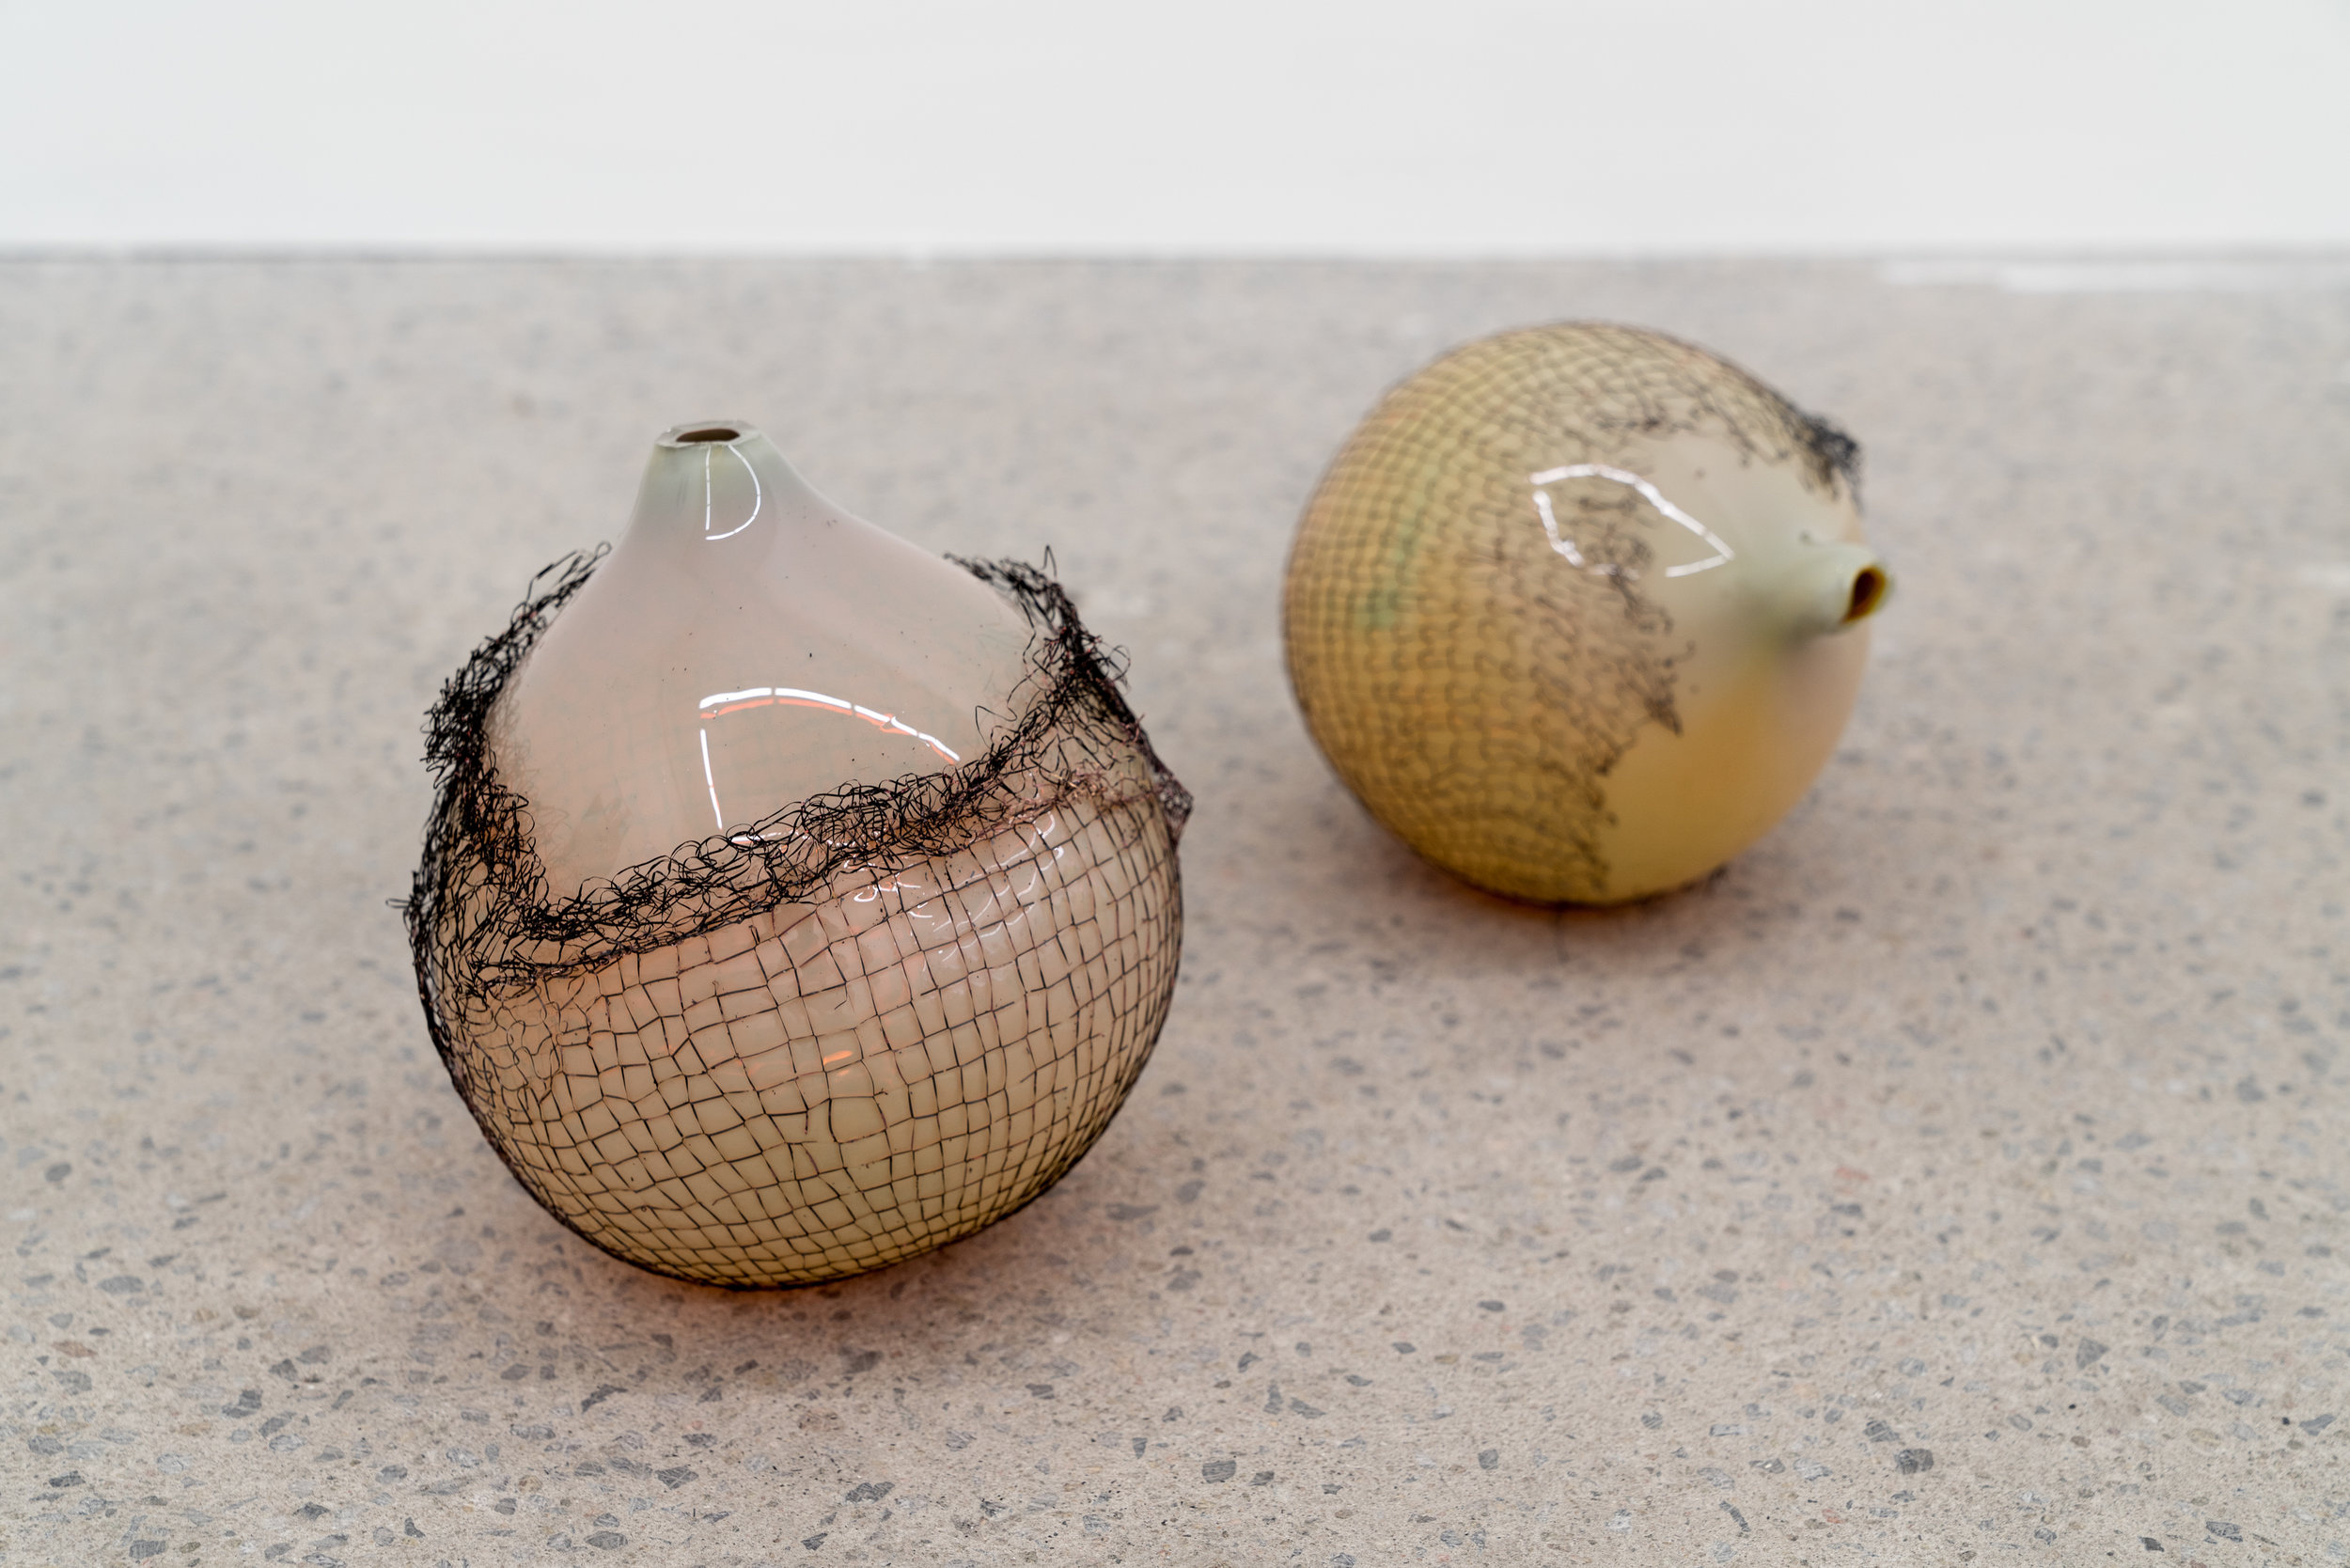 Lorna Bauer,  The Idlers (detail) , 2018, glown glass and copper mesh, variable dimensions